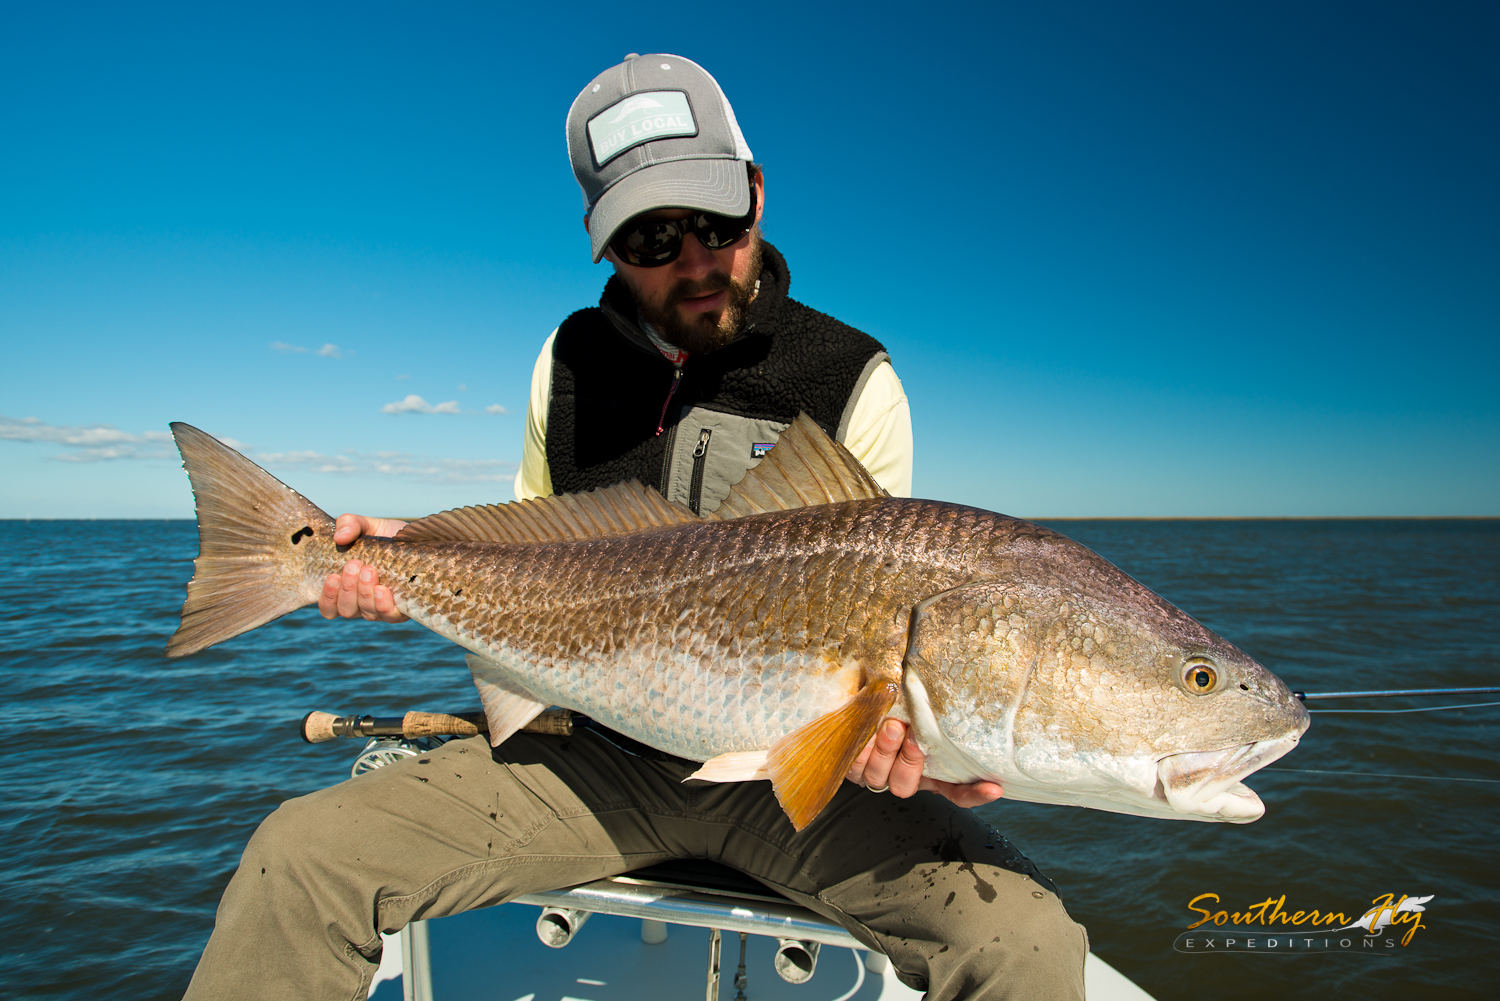 Southern Fly Expeditions fly fishing guide and light tackle guide in new orleans and southern louisiana